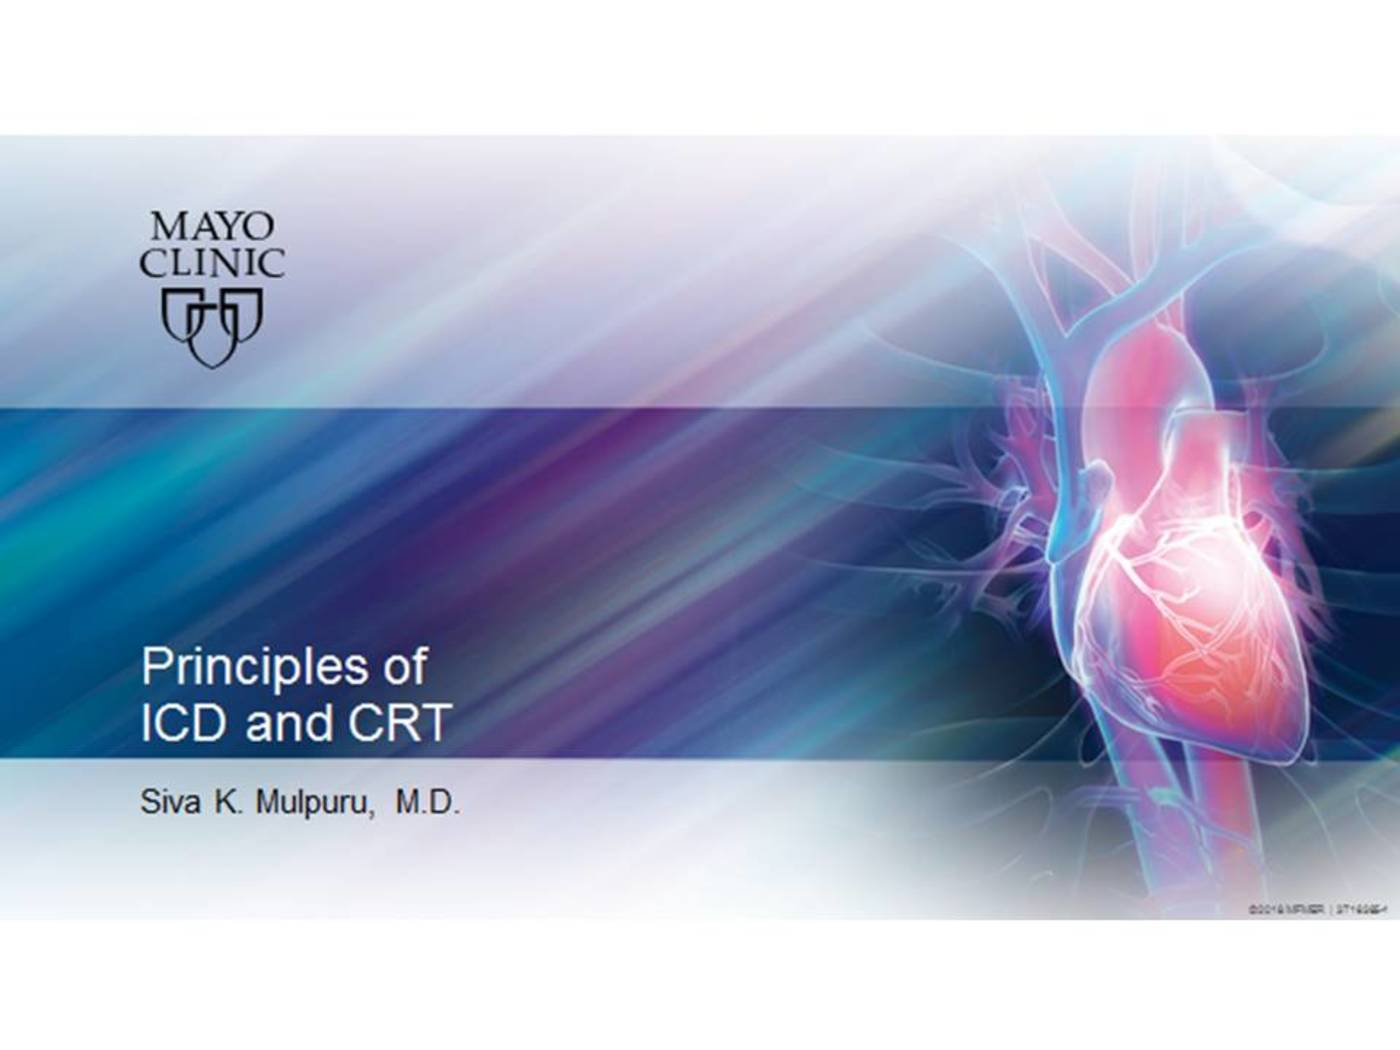 Principles of ICD and CRT